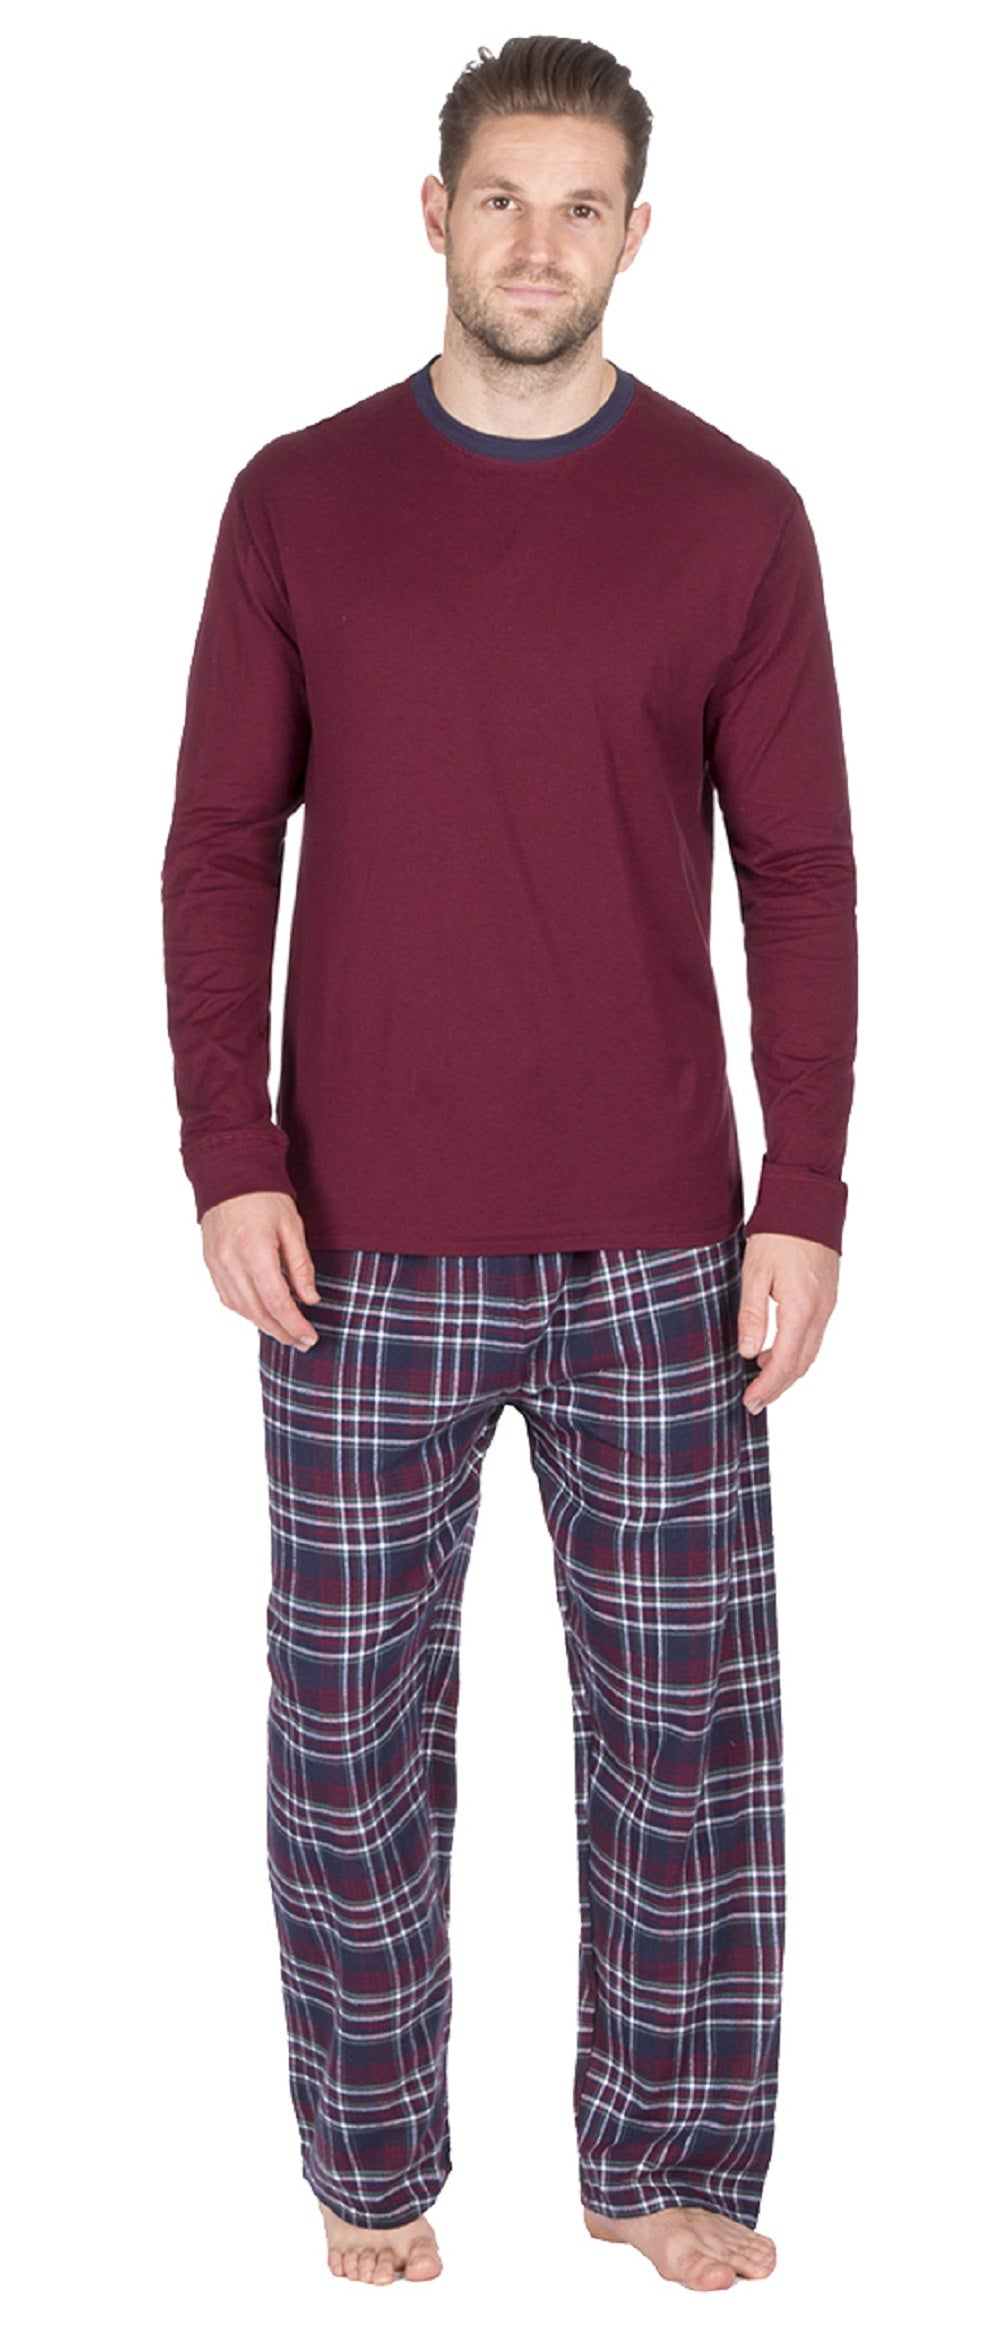 1ec288997c OCTAVE Mens Long Sleeve Jersey Cotton Top & Checked Flannel Pants Pyja -  British Thermals